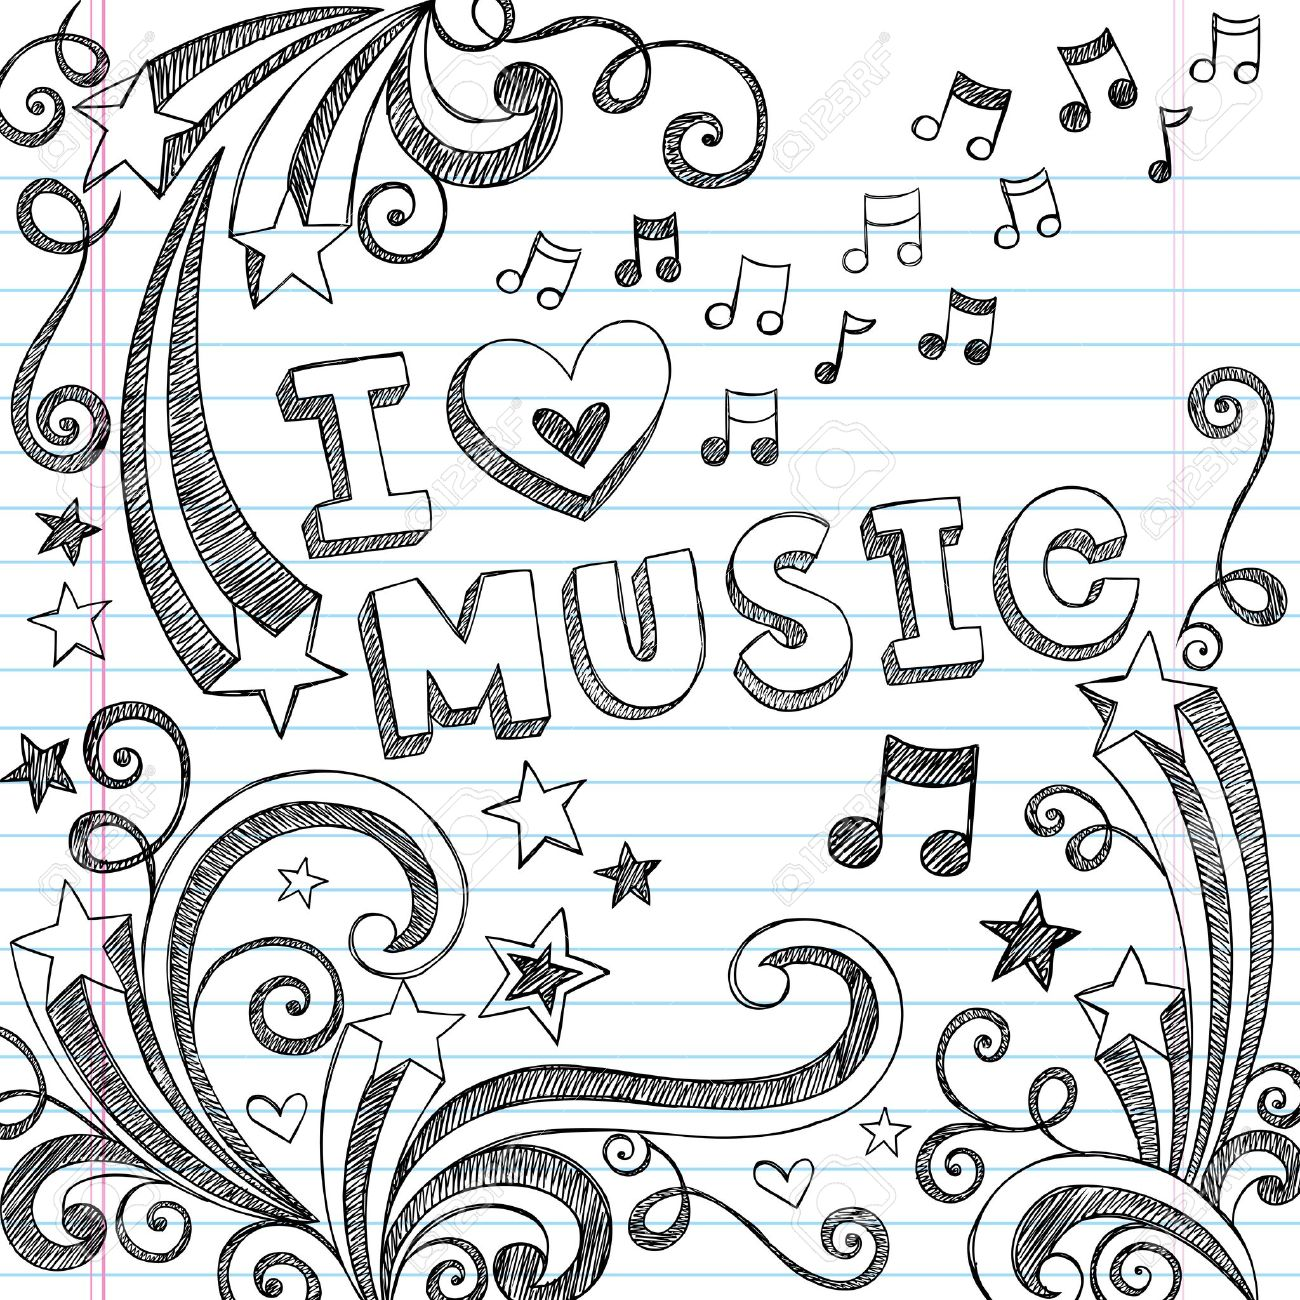 I Love Music Back to School Sketchy Notebook Doodles with Music Notes and Swirls- Hand-Drawn Vector Illustration Design Elements on Lined Sketchbook Paper Background Stock Vector - 15675558